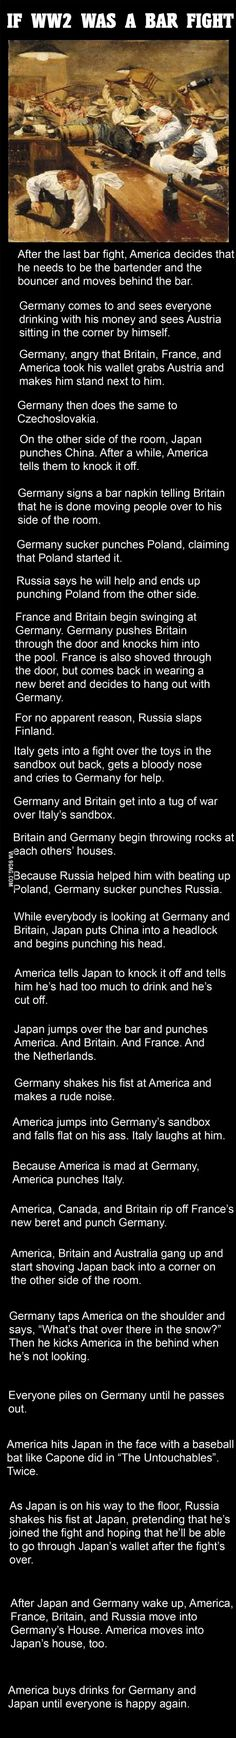 If World War 2 Was A Bar Fight..finally an easy way to understand history!!